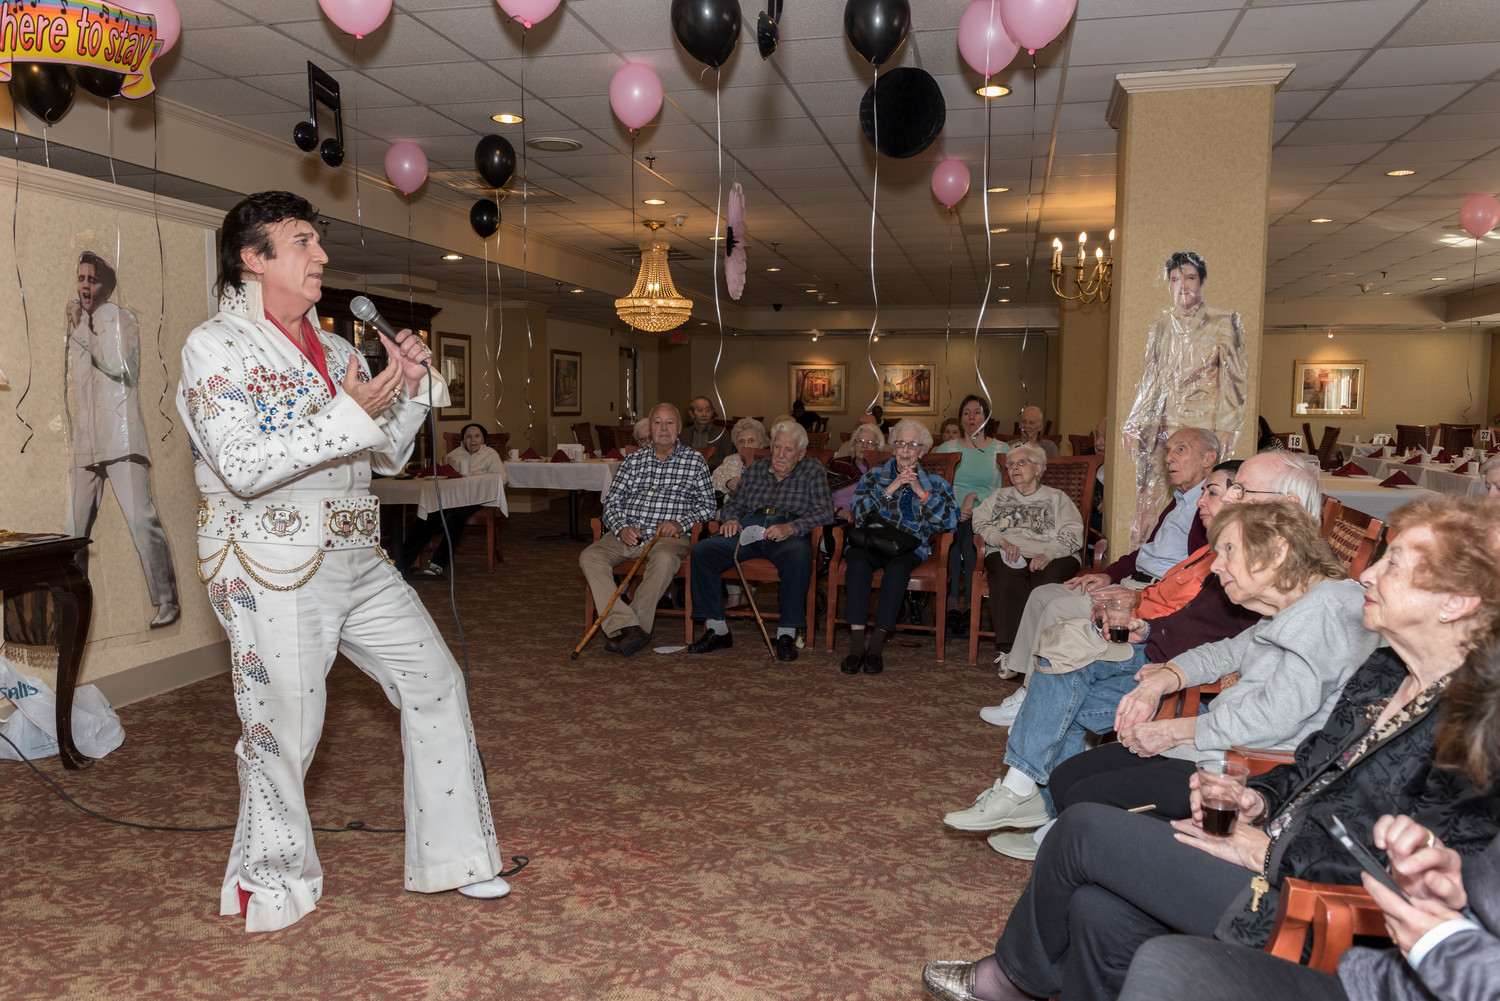 Elvis' birthday décor included pink and black balloons, music notes, and cutouts of the king hanging on the walls.